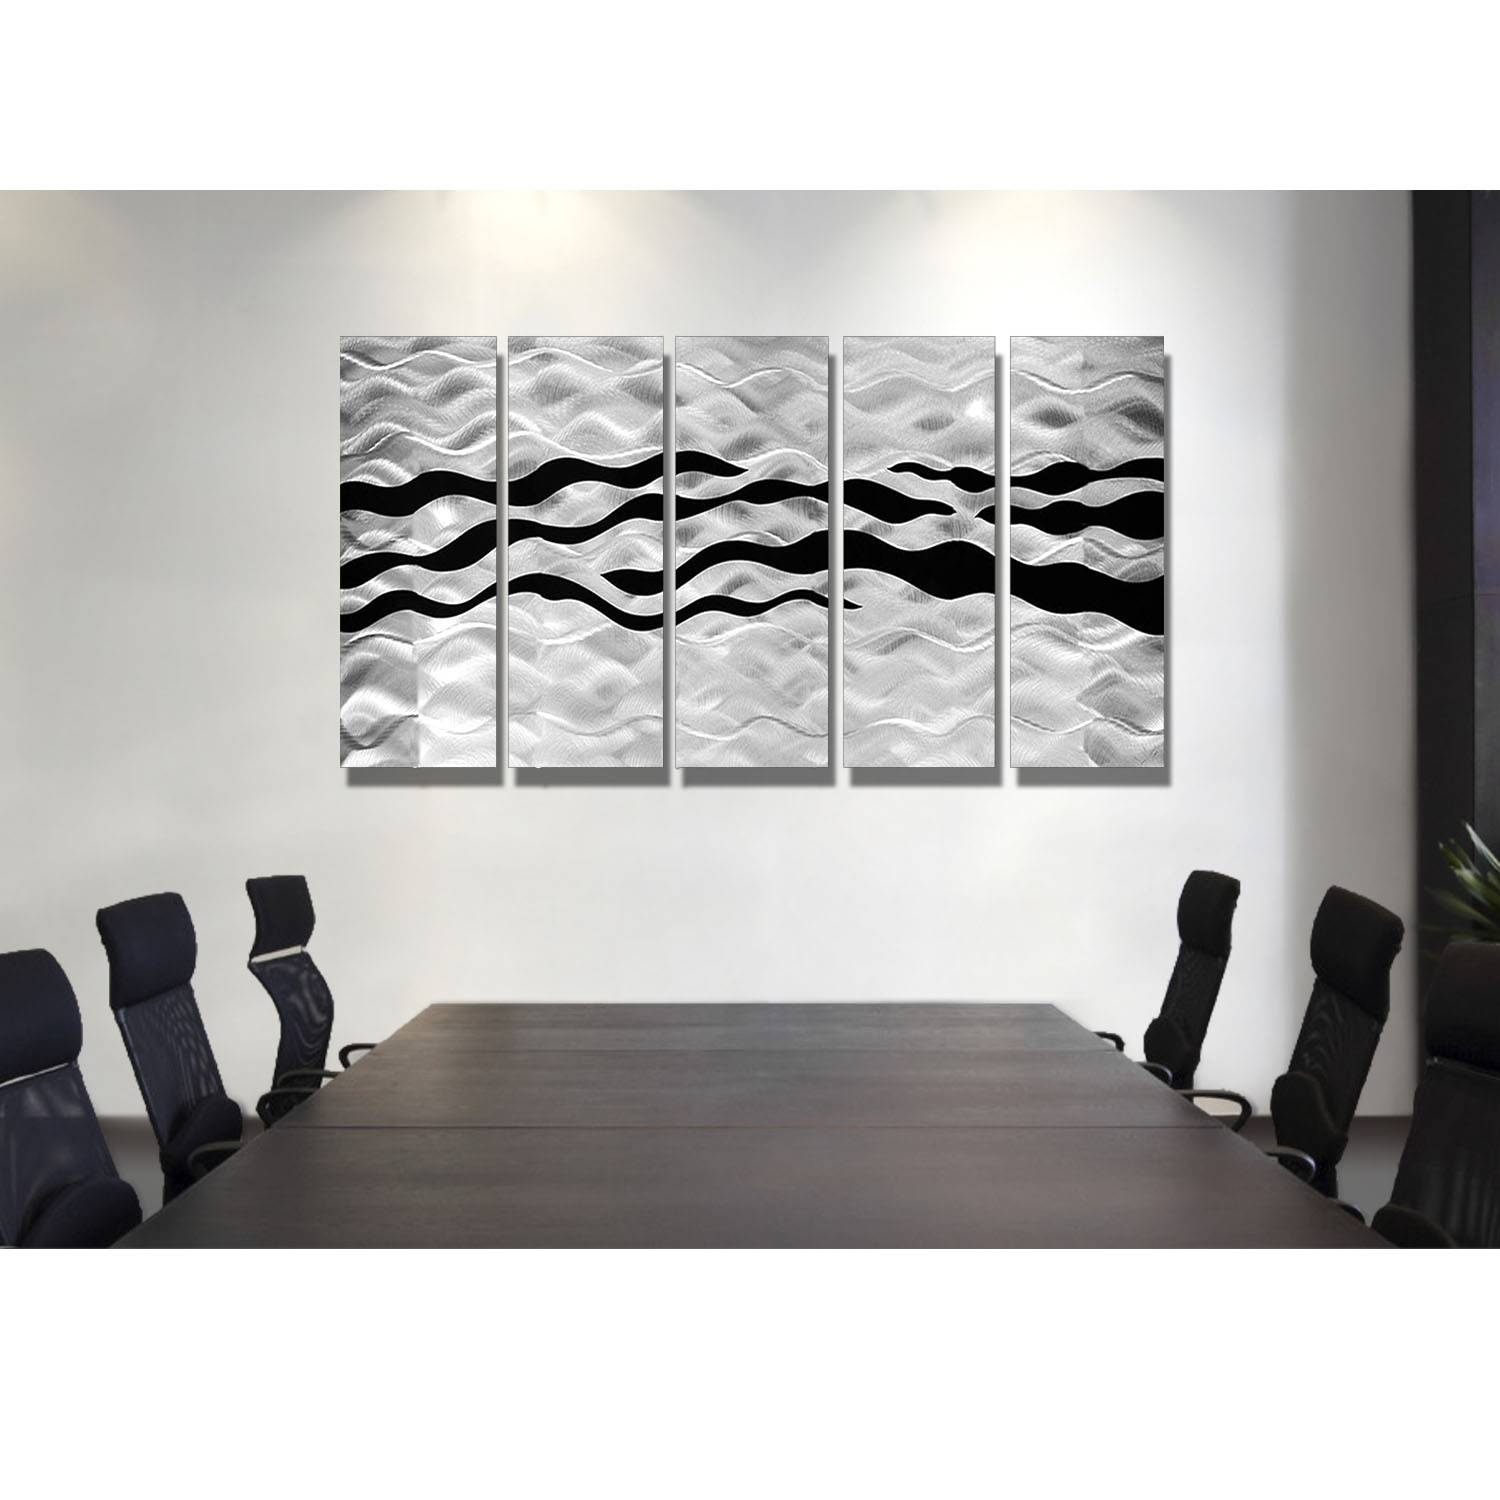 Onyx Oceana – Silver And Black Metal Wall Art – 5 Panel Wall Décor Within Newest Black Silver Wall Art (View 4 of 20)